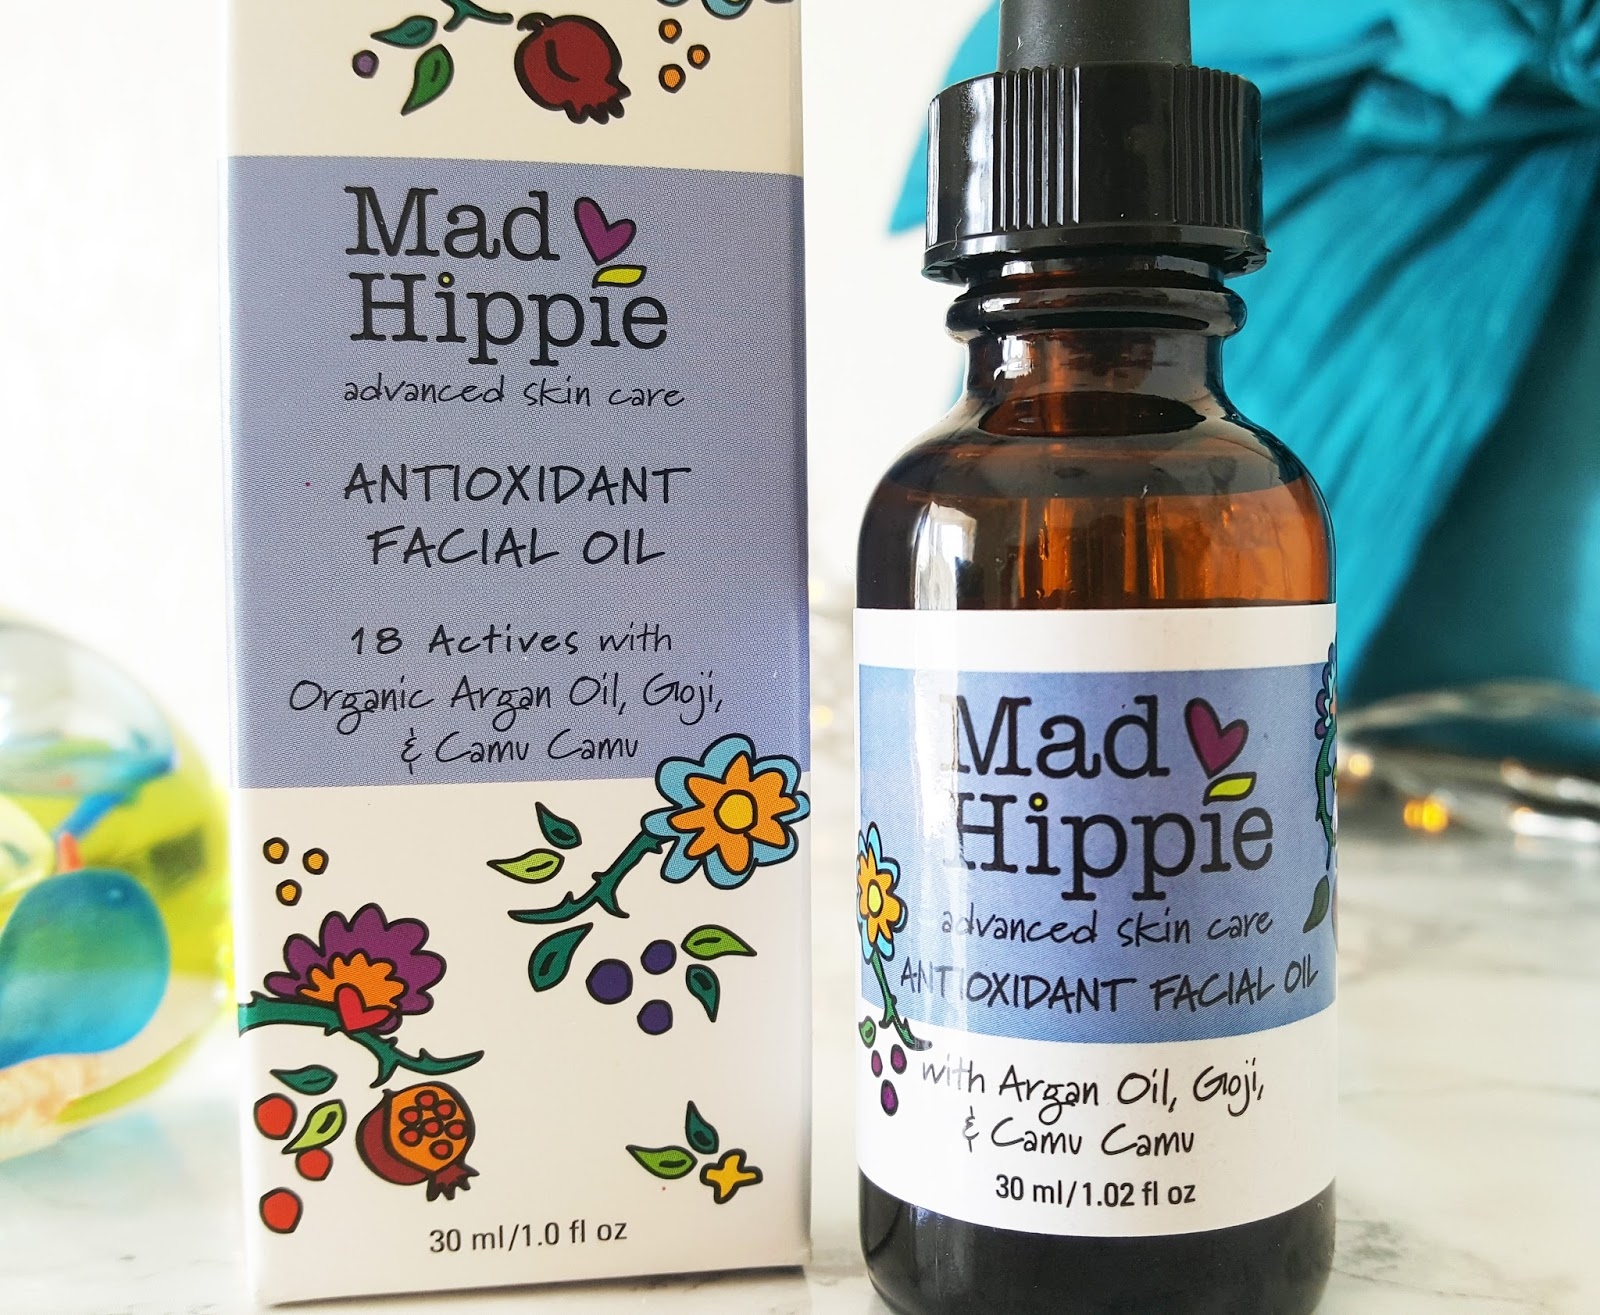 Every woman needs a good antioxidant oil. Image shows Mad Hippie's